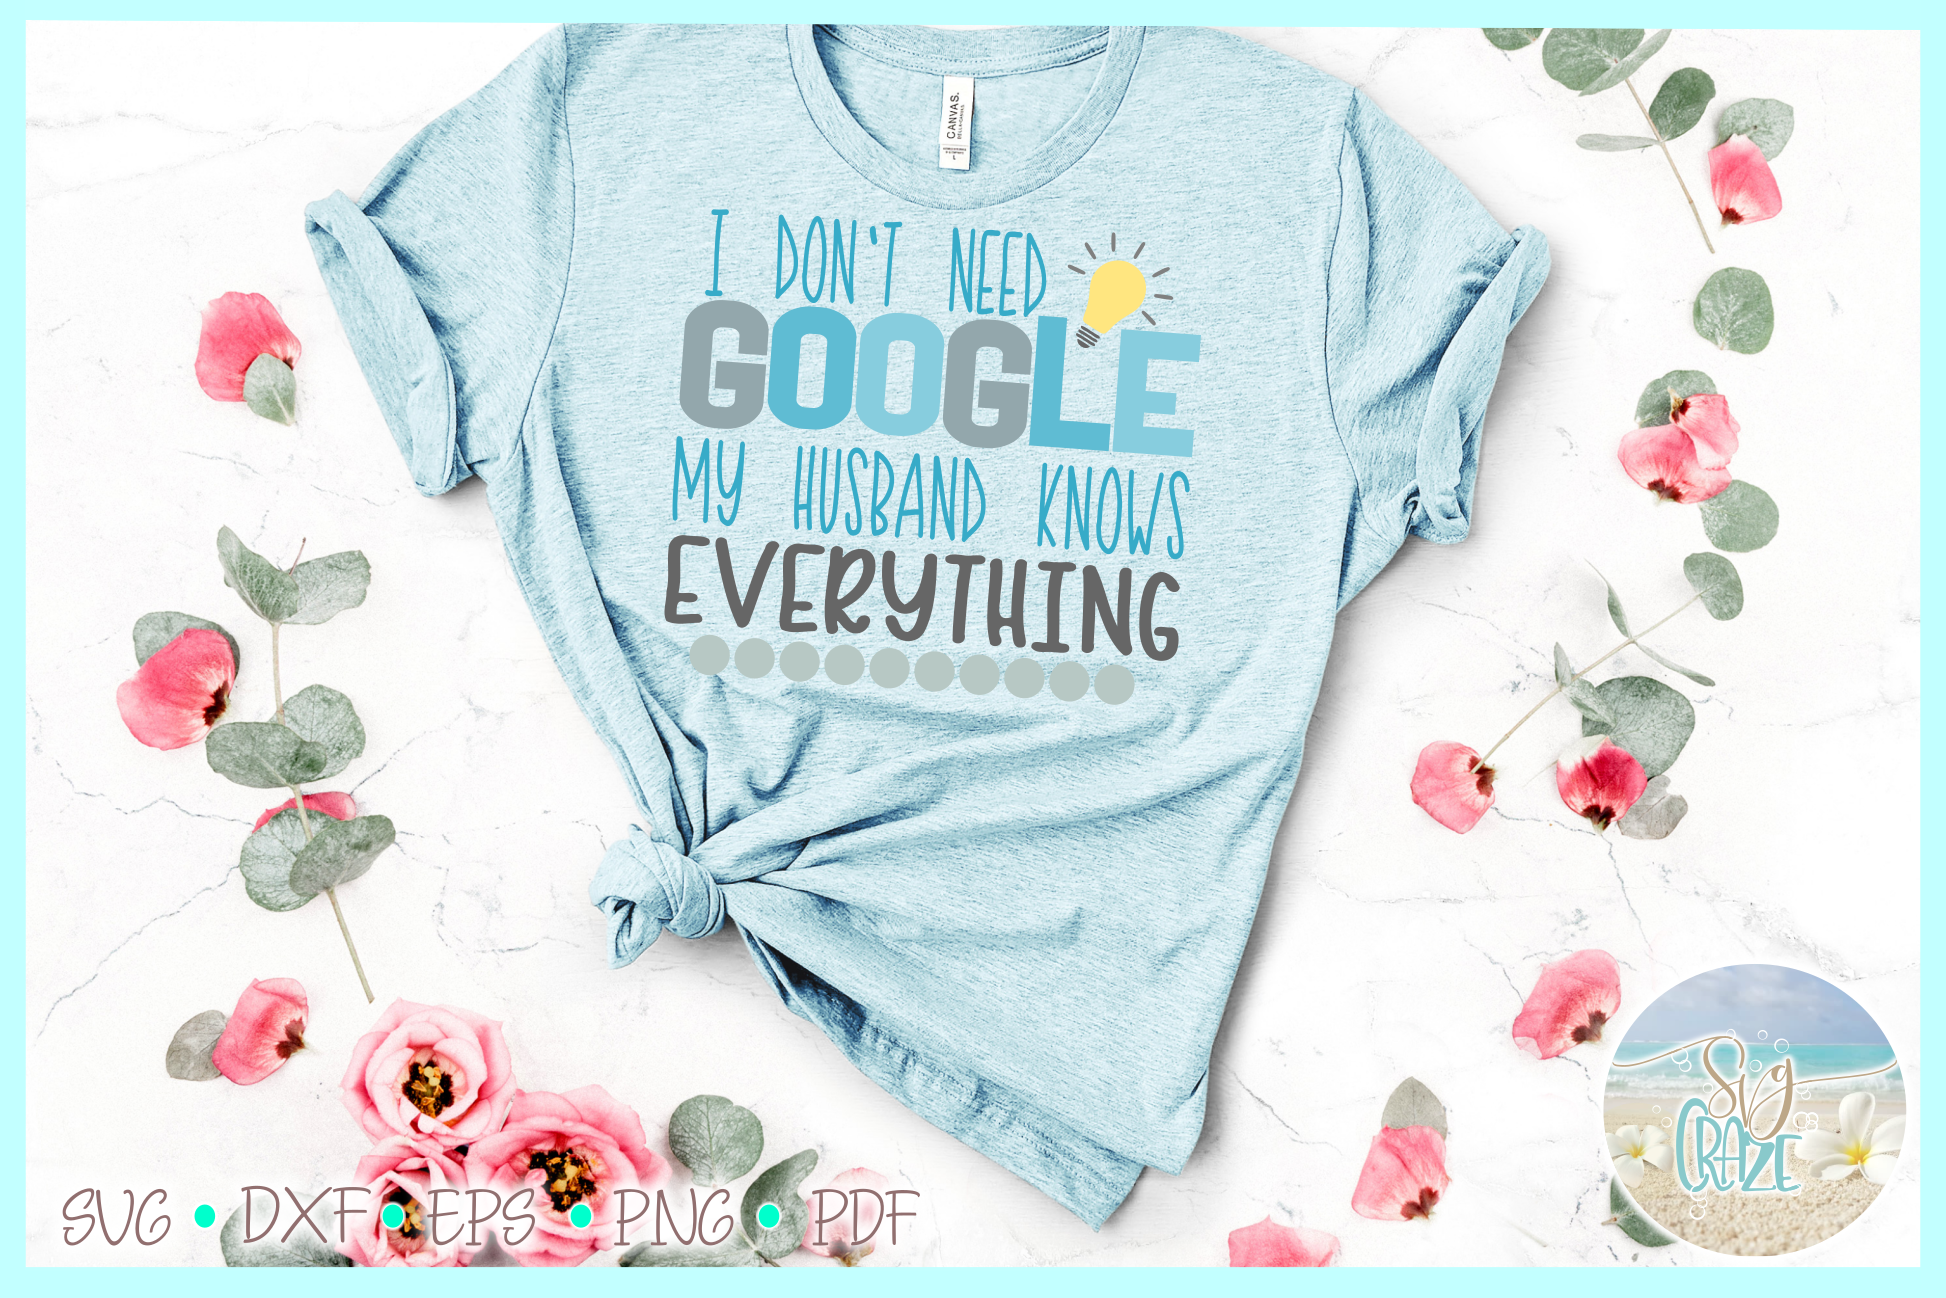 Funny Sarcastic Humorous Sayings Quote SVG Bundle example image 2